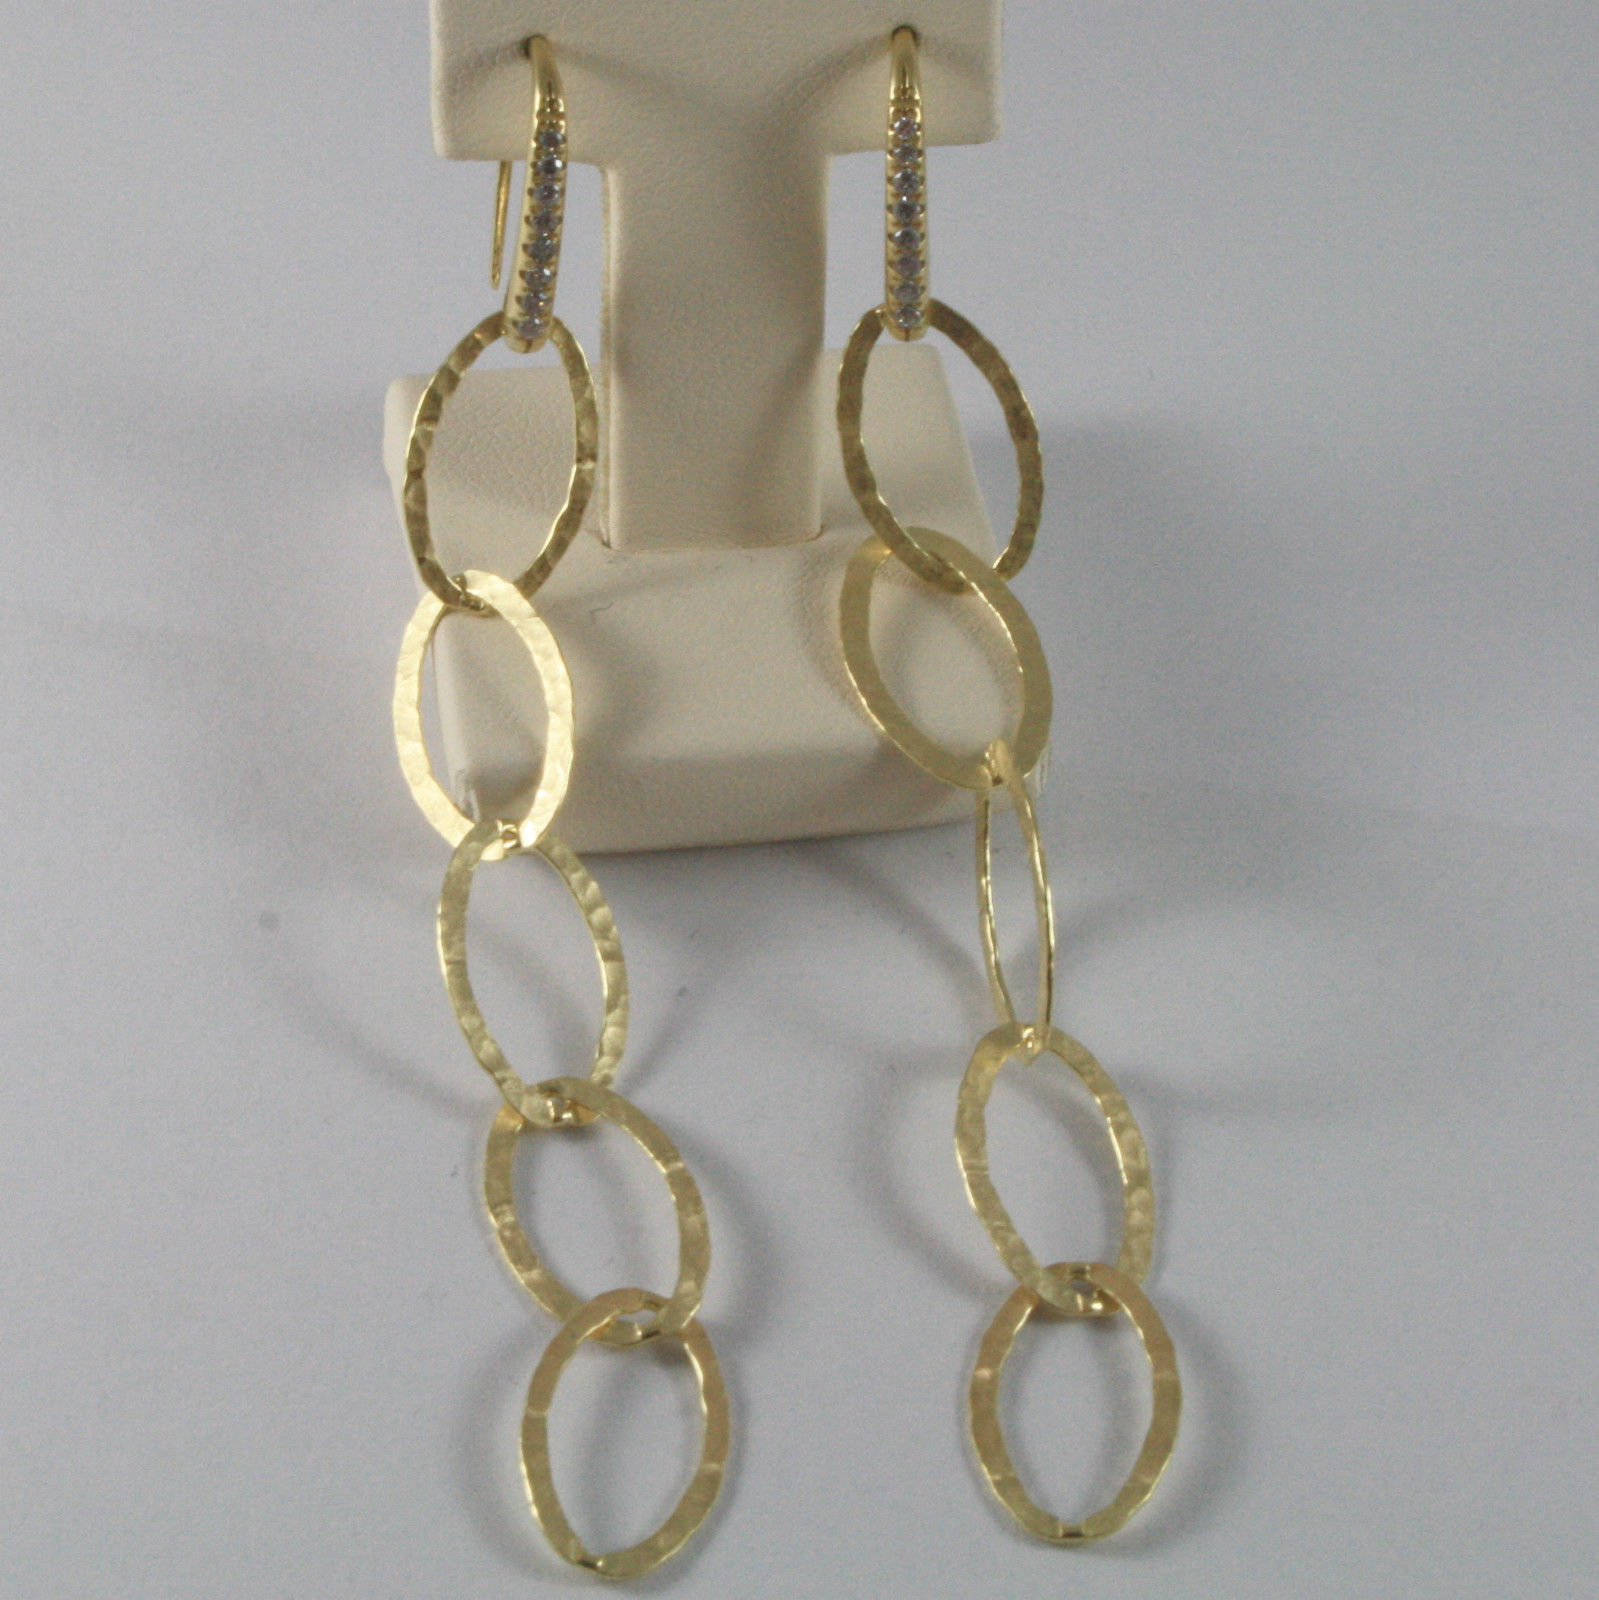 YELLOW 925 SILVER PENDANT EARRINGS, OVAL HAND HAMMERED BY NANIS MADE IN ITALY